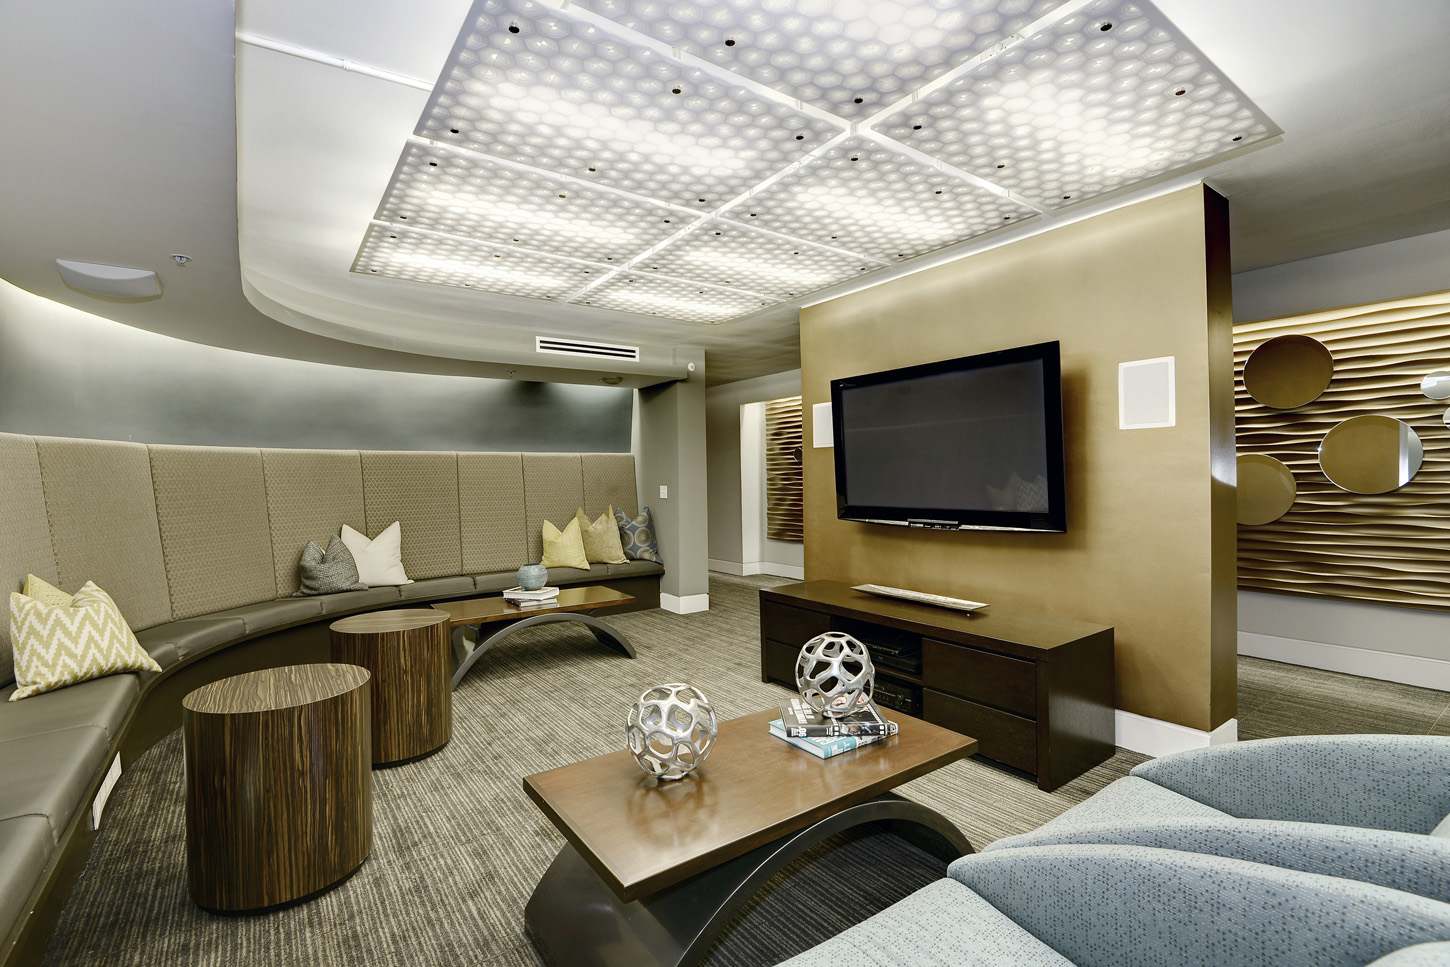 Entertainment center lounge with banquette seating and armchairs, with open hallway beyond